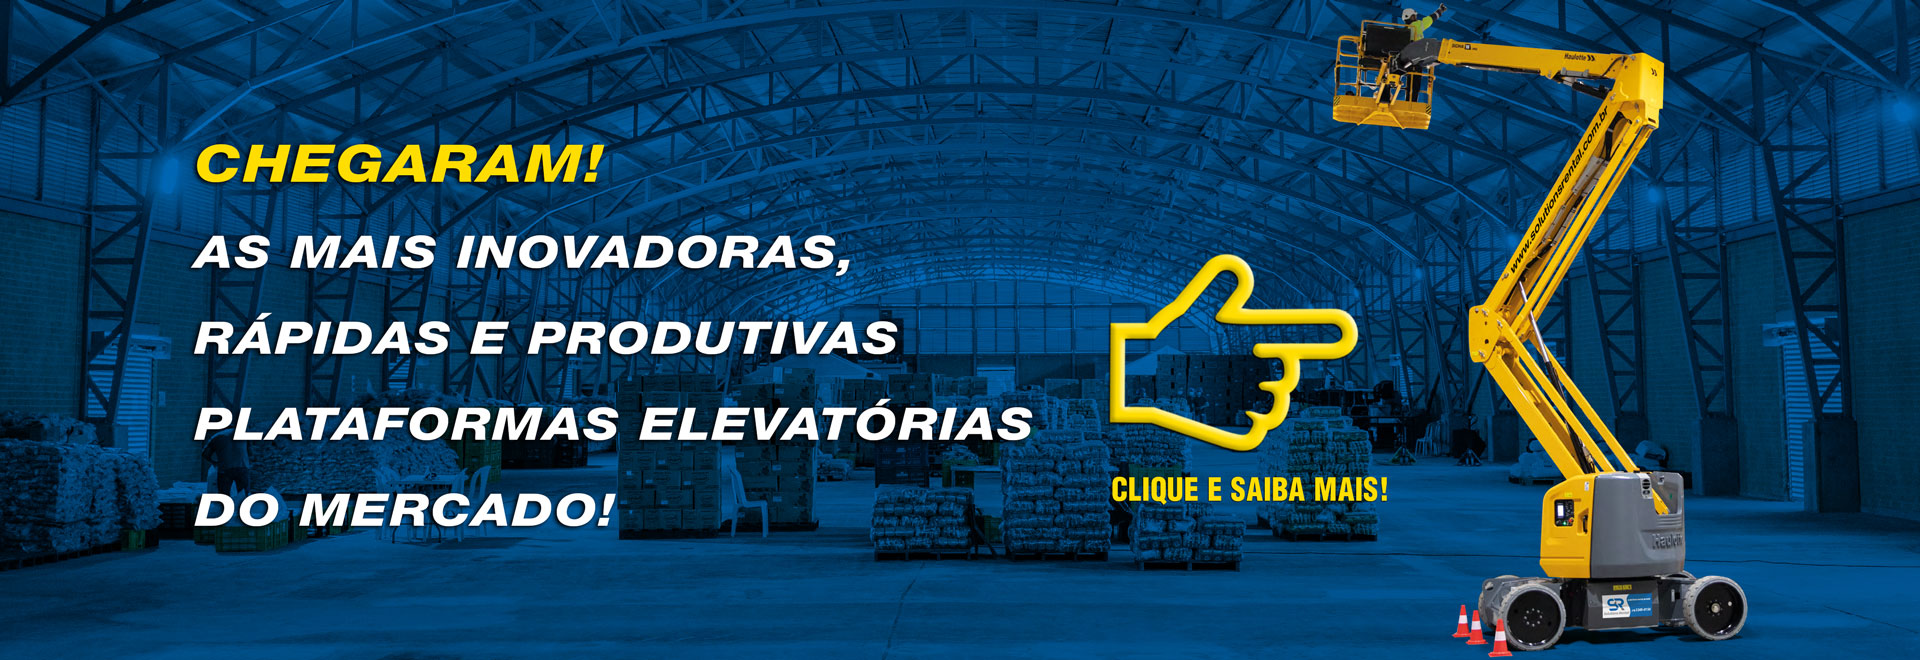 _solutions-rental-banner-07-2021_a01